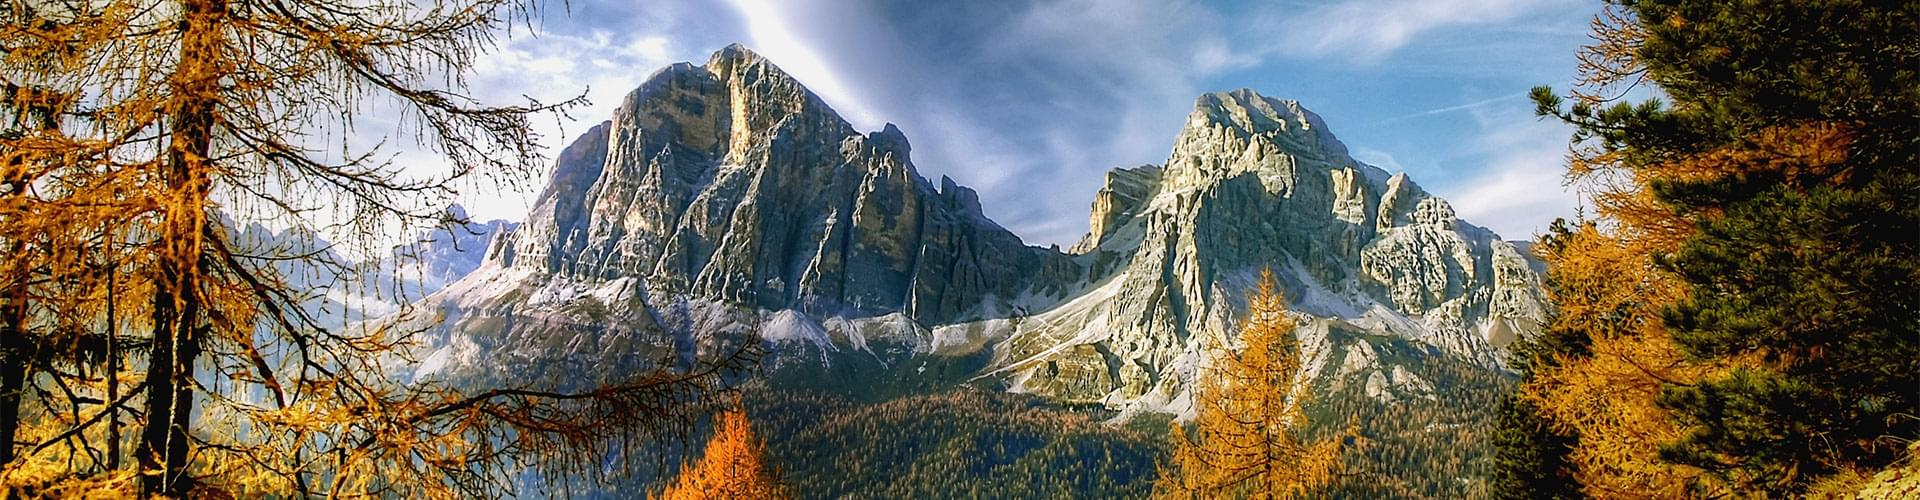 Belluno Dolomites National Park